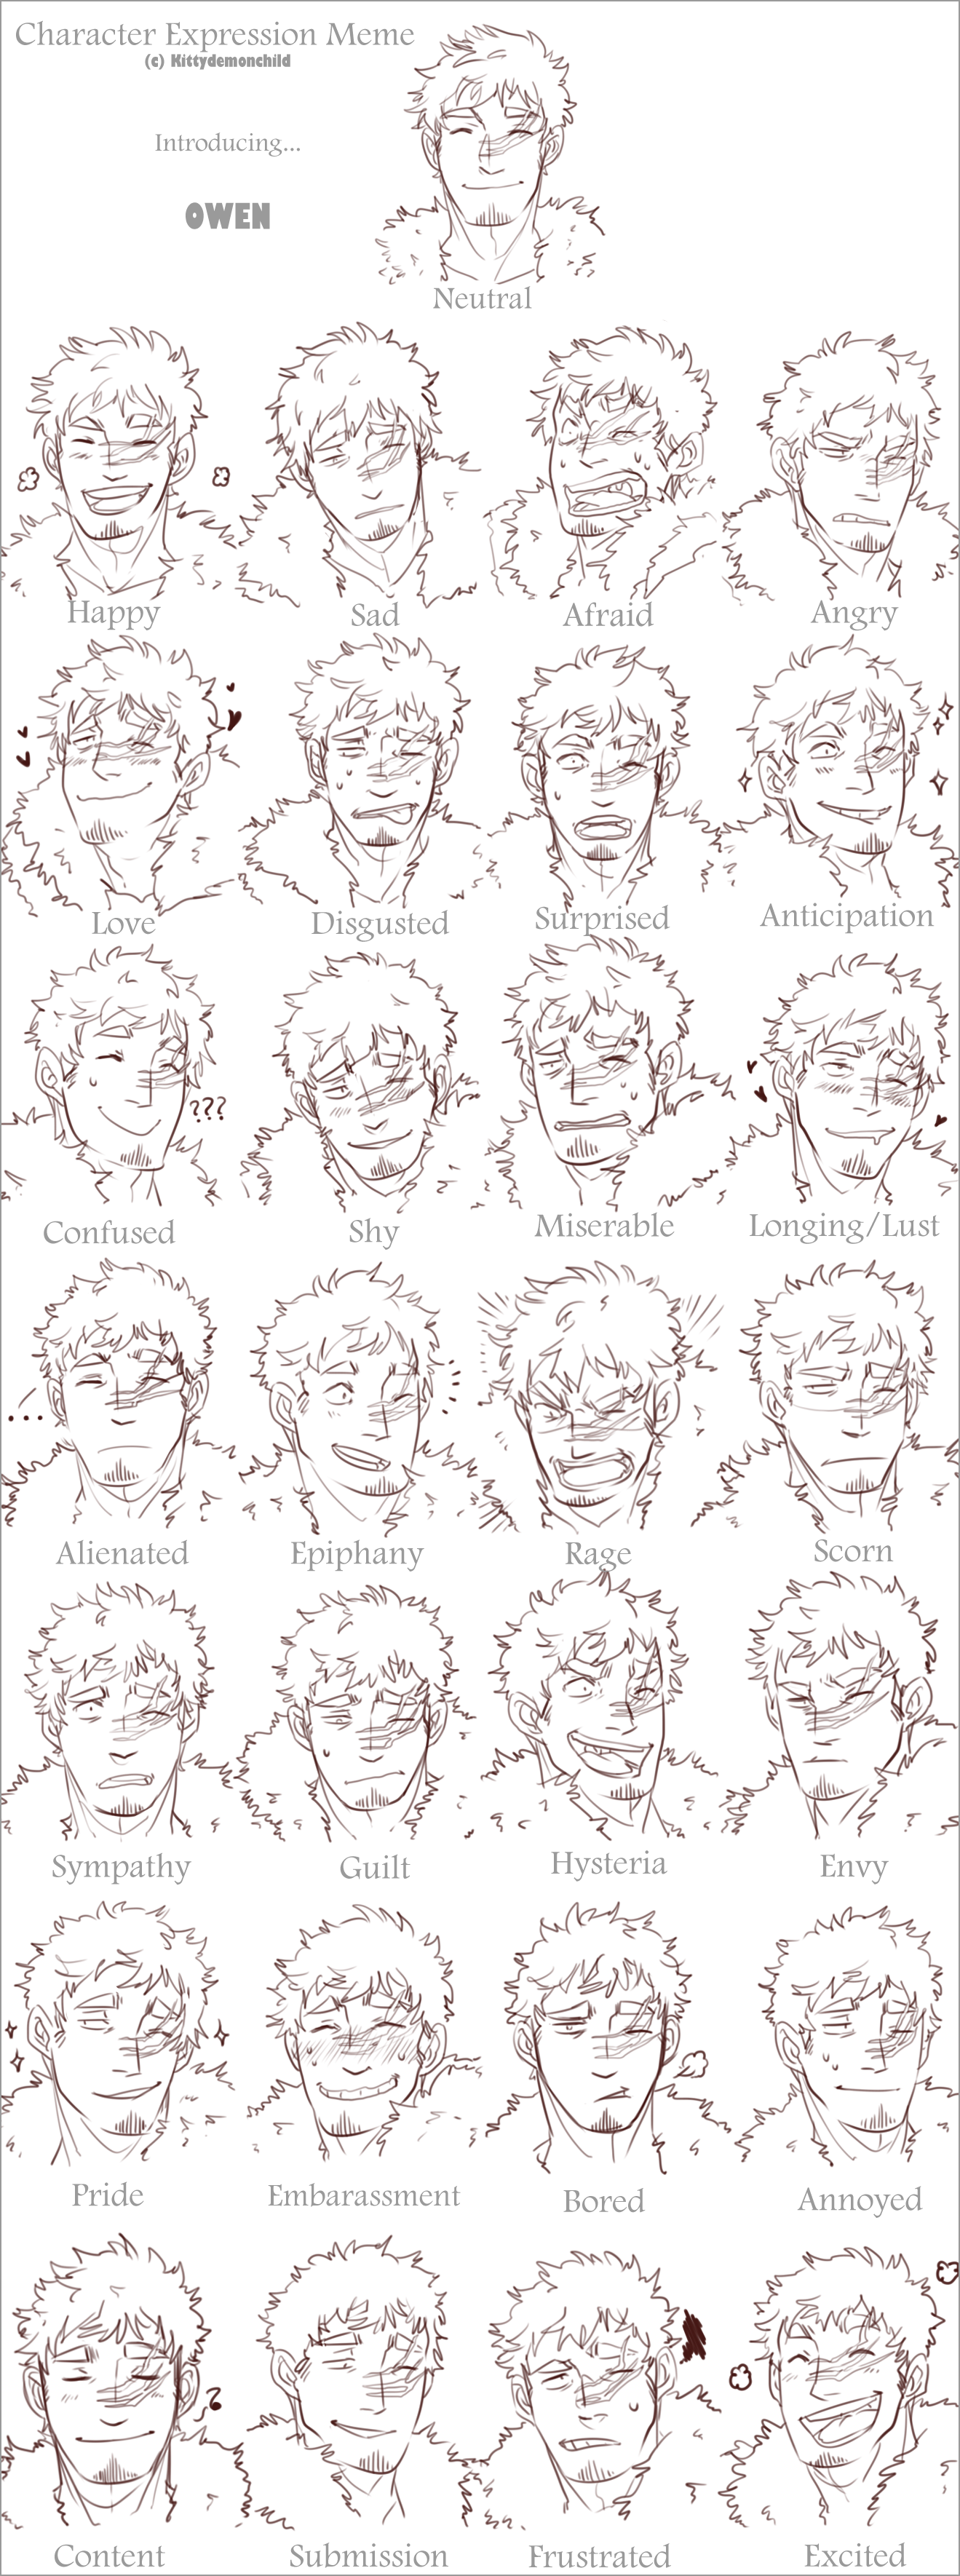 The Character Expressions Meme by MooseFroos